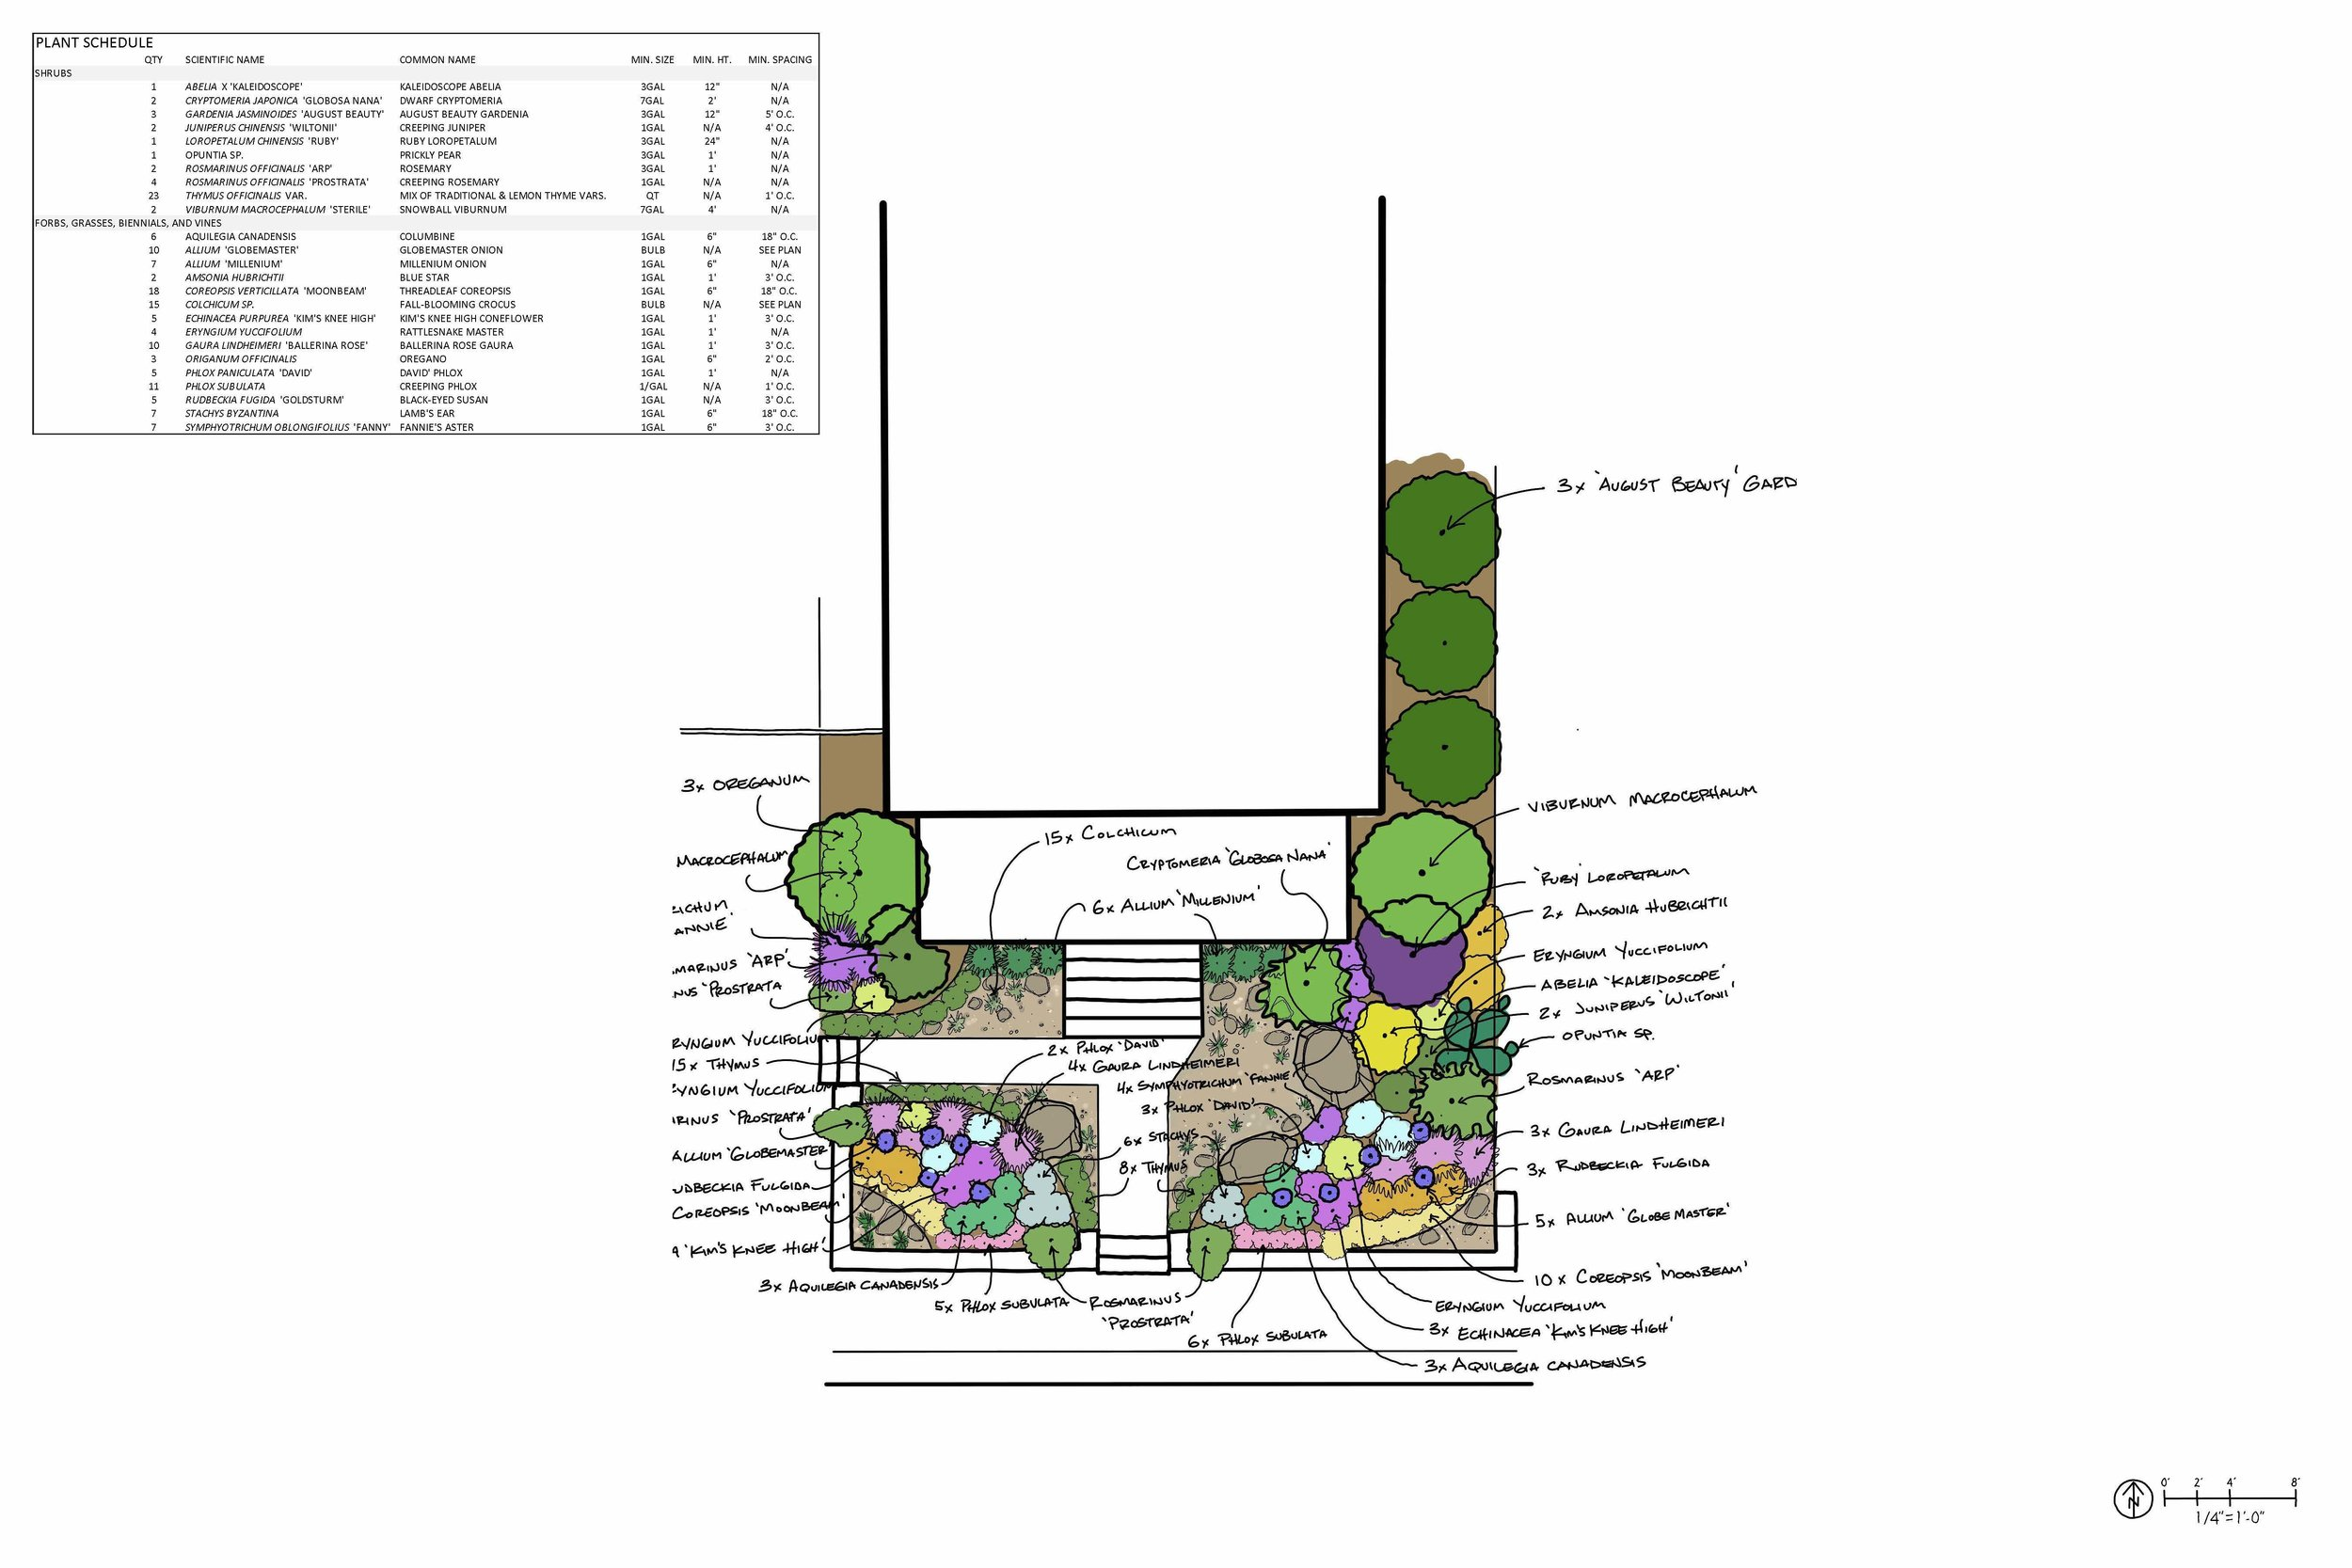 Featured above is a residential landscape design seeking to create a social space in the front yard to provide opportunities for neighbor engagement and to challenge the convention that recreation is more appropriate for the backyard. Edible plants mingle with historically native, pollinator and bird-friendly plants to bring neighbors of many species to the landscape. Boulders create opportunities for sitting and chatting with folks on the sidewalk, and the use of gravel instead of turf creates a significantly less expensive and more straightforward landscape to manage.